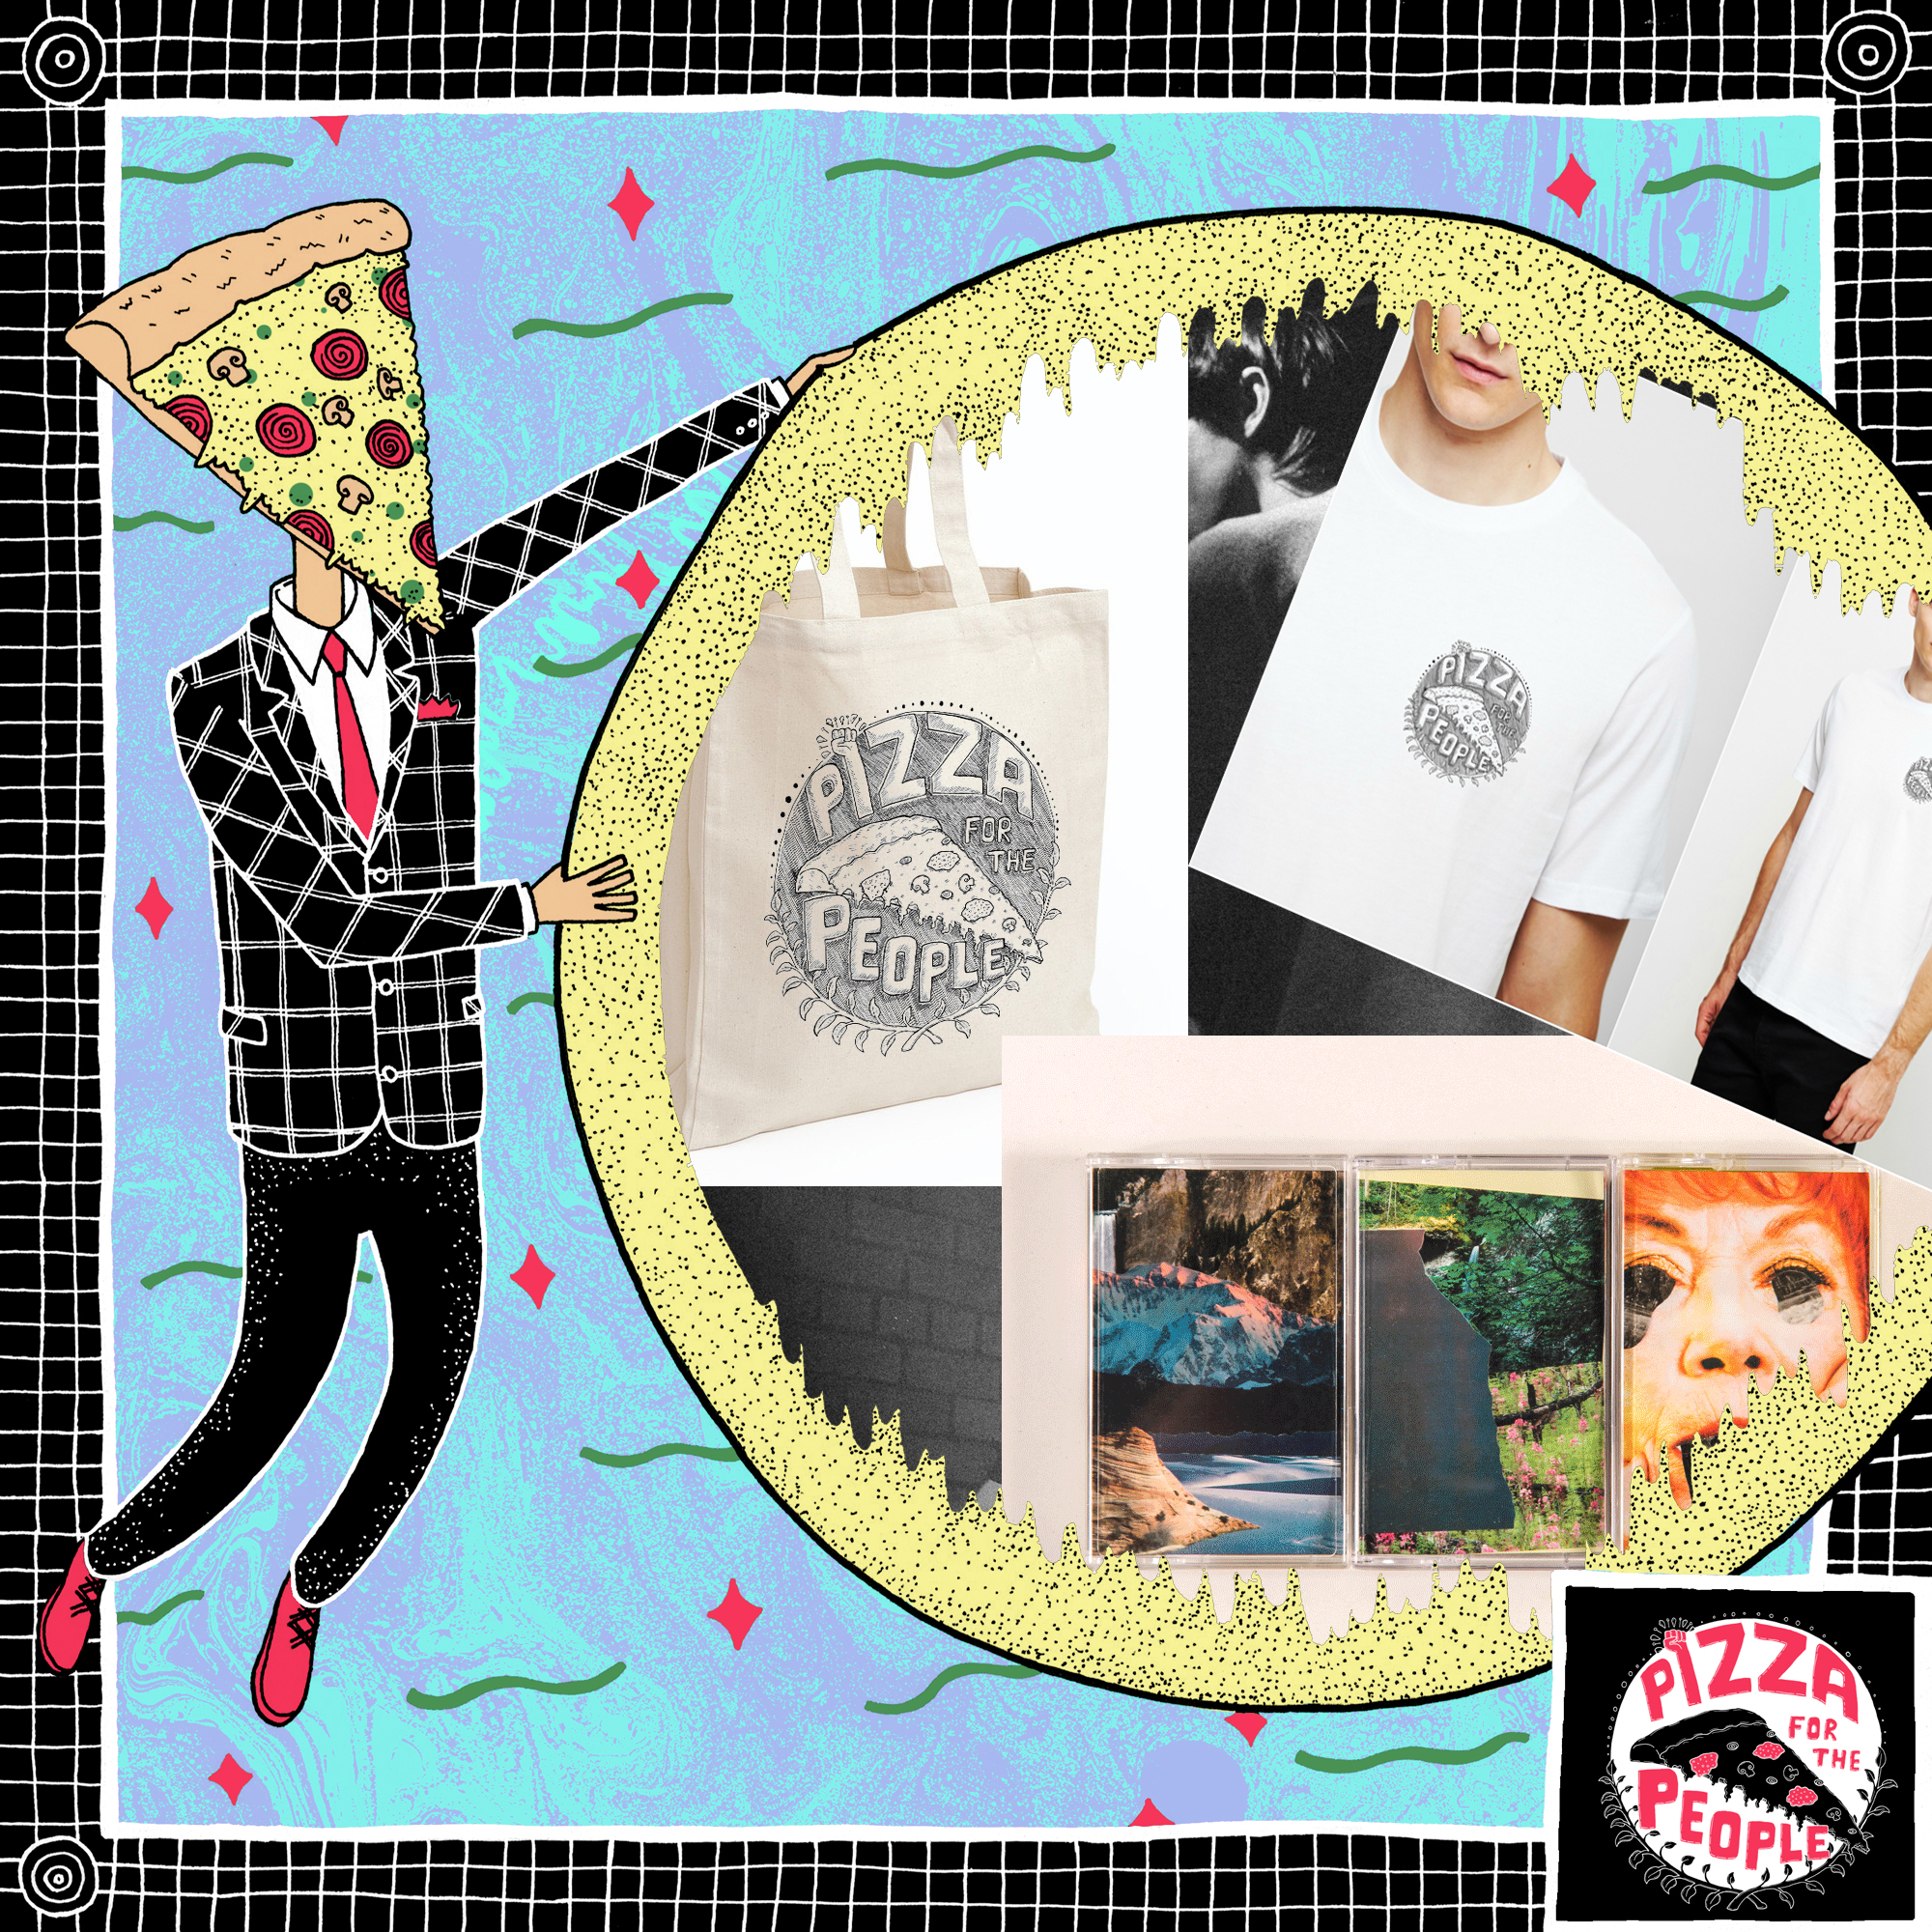 Pizza Bundle 1 (SOLD OUT) - Pizza For The People